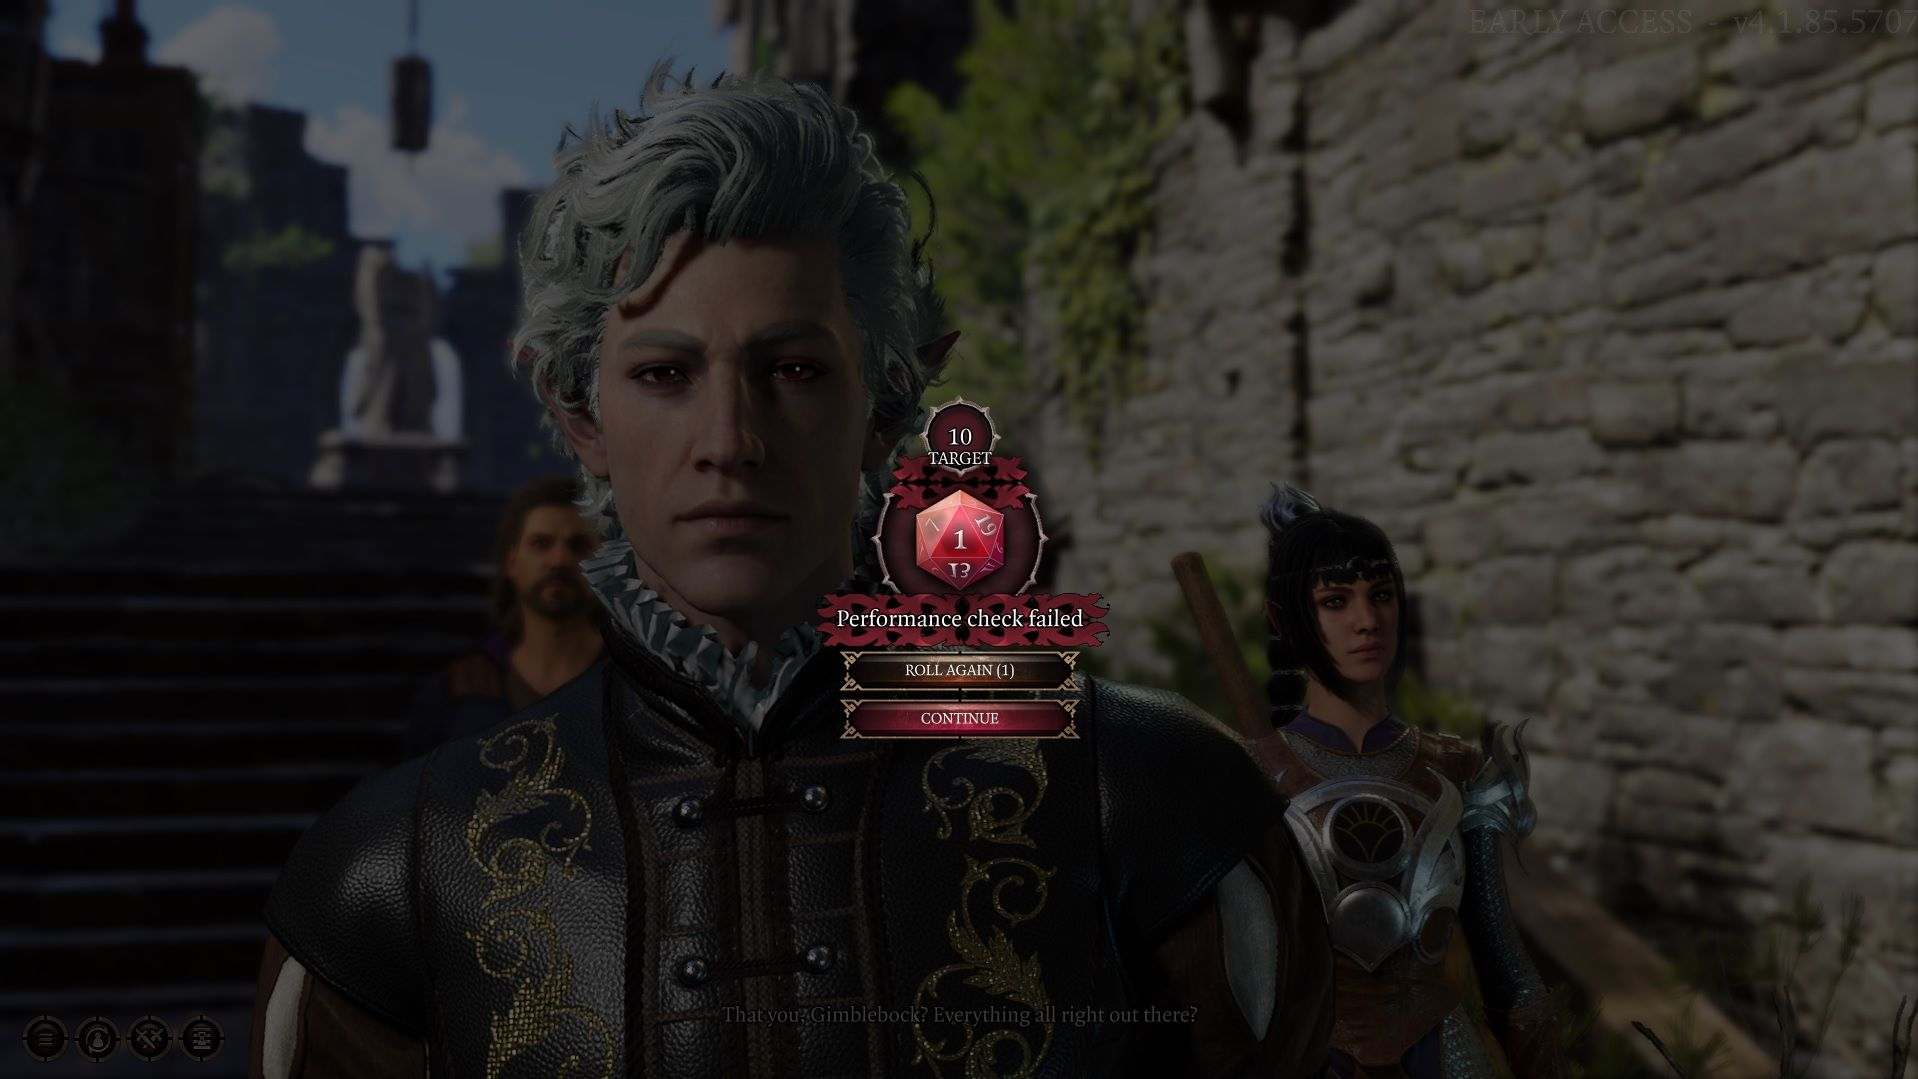 A screenshot showing Astarion, the white-haired vampire spawn character in Baldur's Gate III, critically failing at a performance roll. The dice roll is shown on screen.